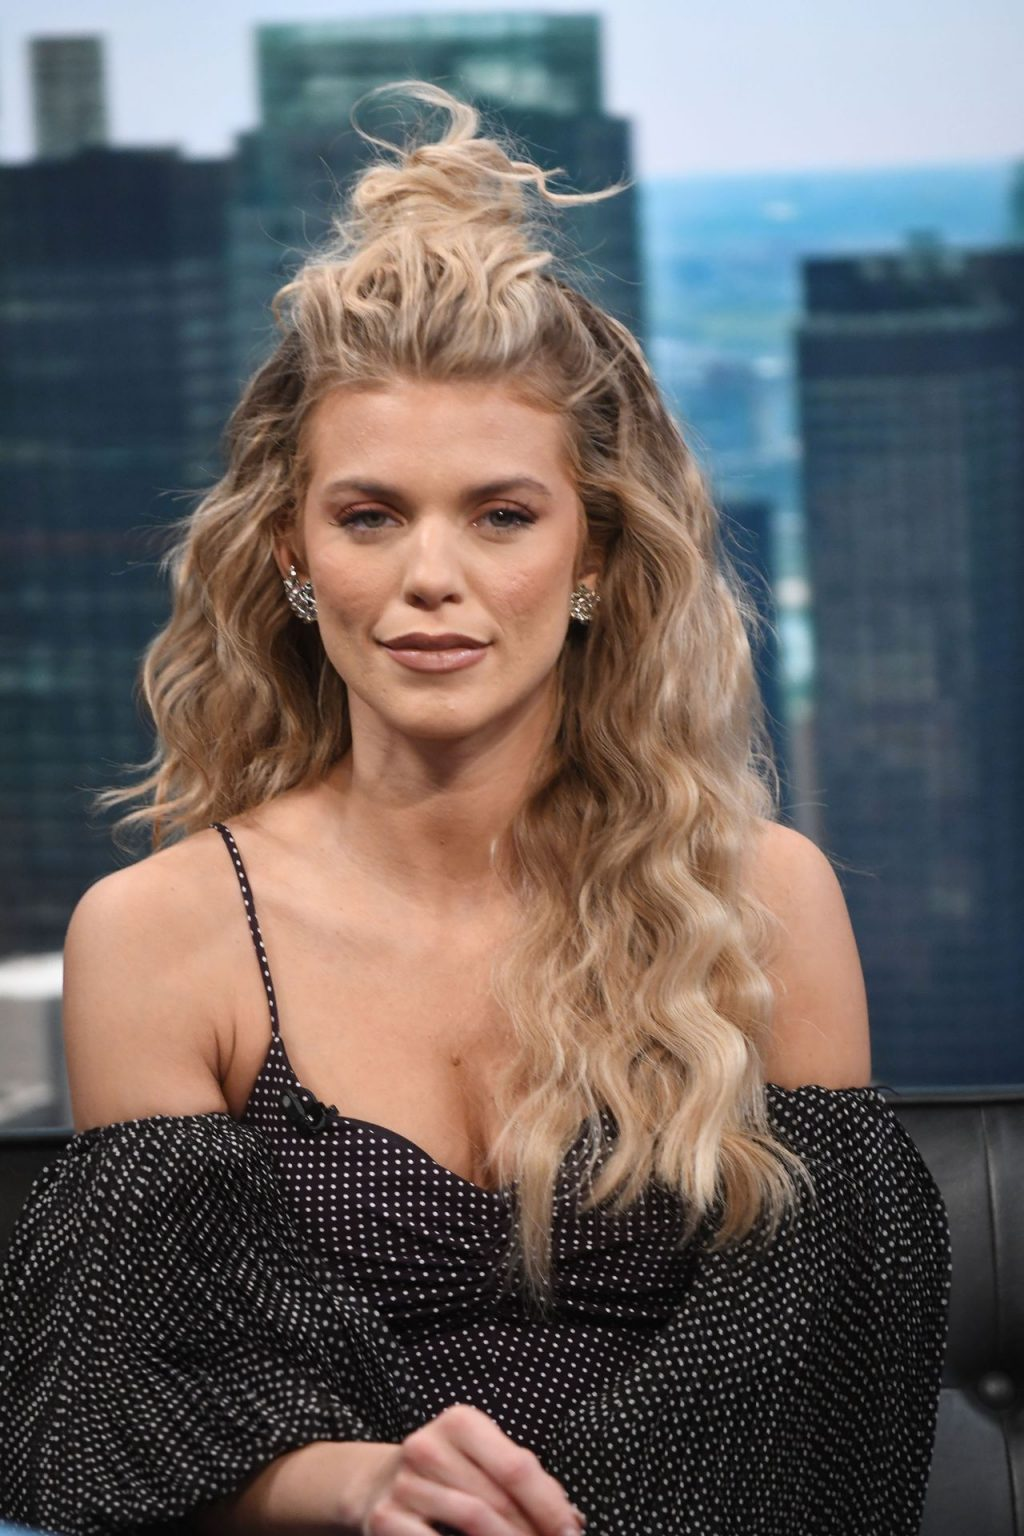 AnnaLynne McCord Looks Pretty on Good Day New York (37 Photos + Video)